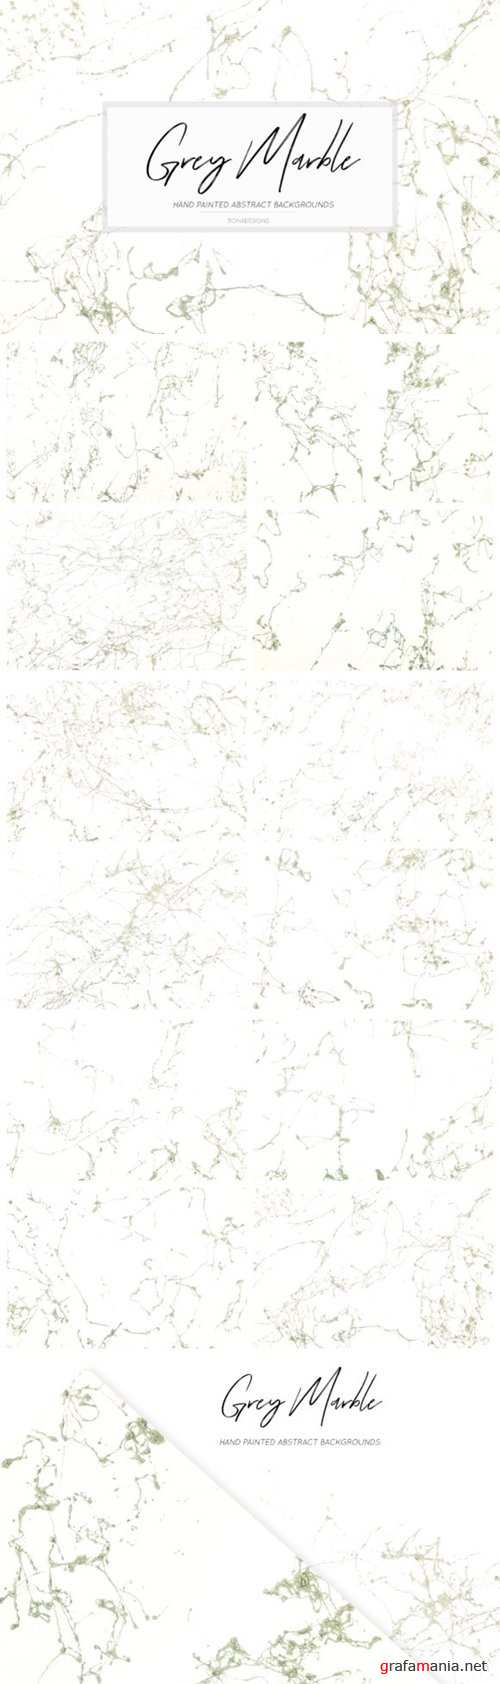 Grey Abstract Marble Backgrounds 3984521